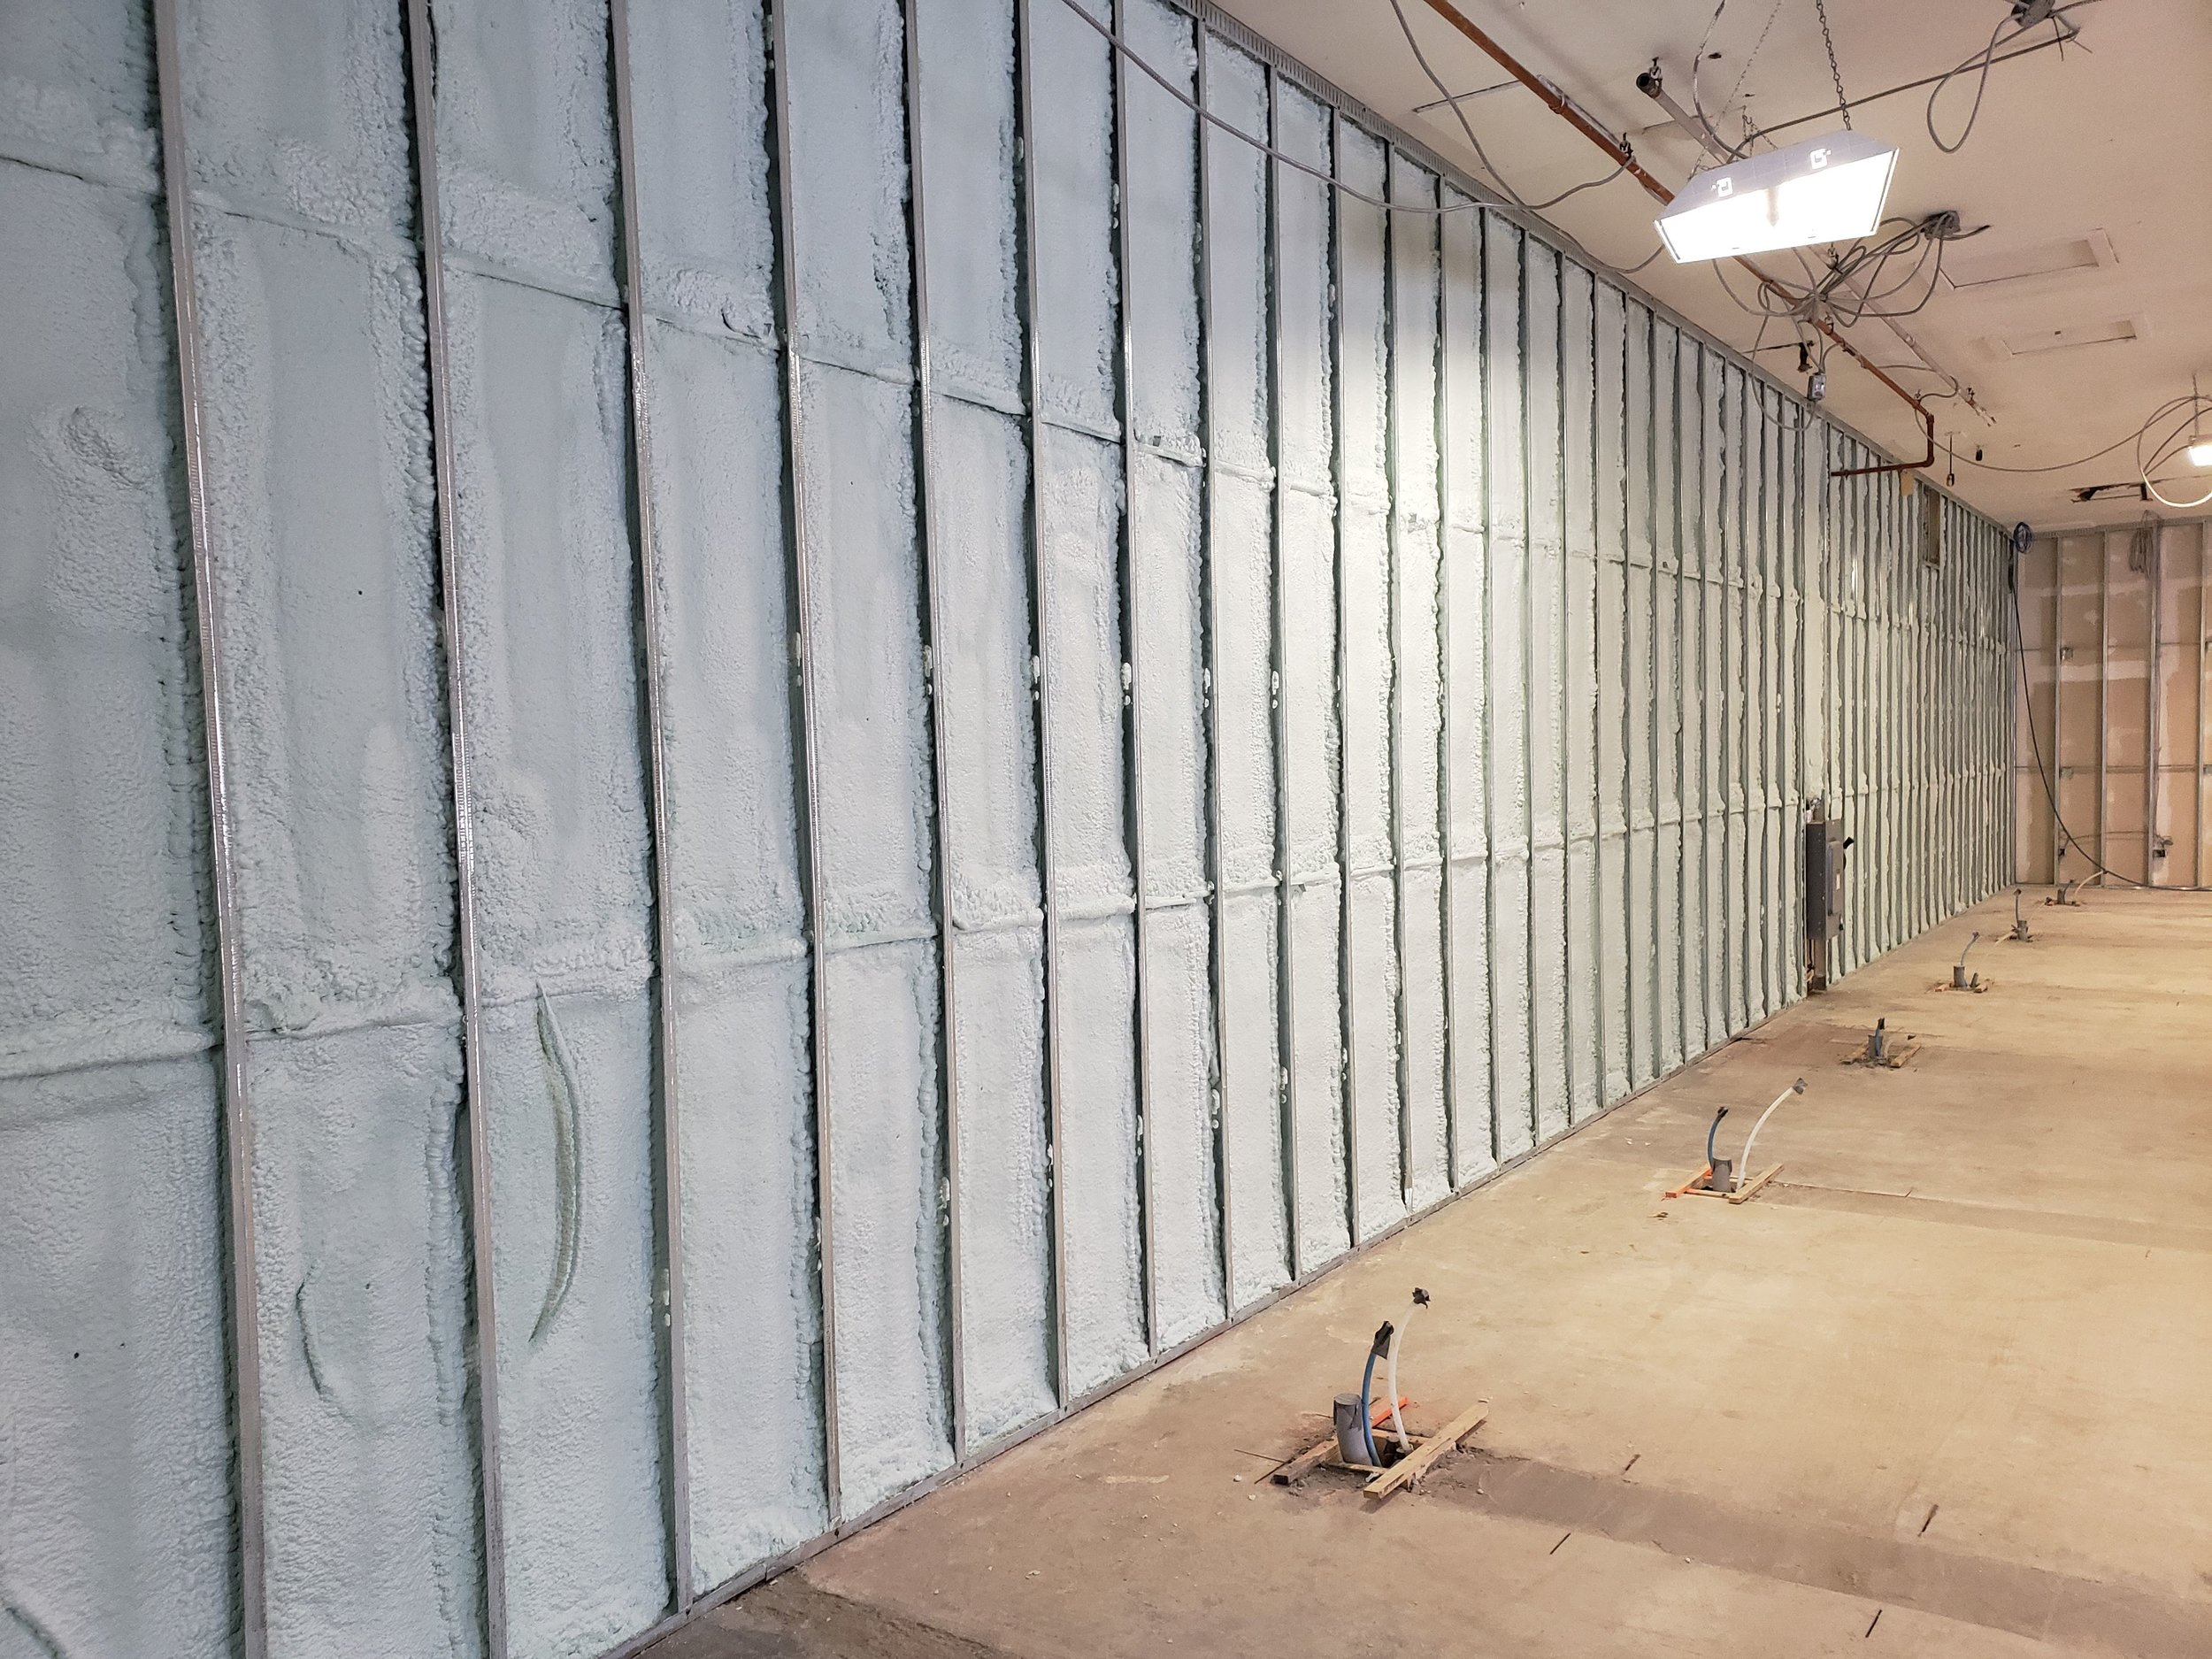 Walls all sealed up